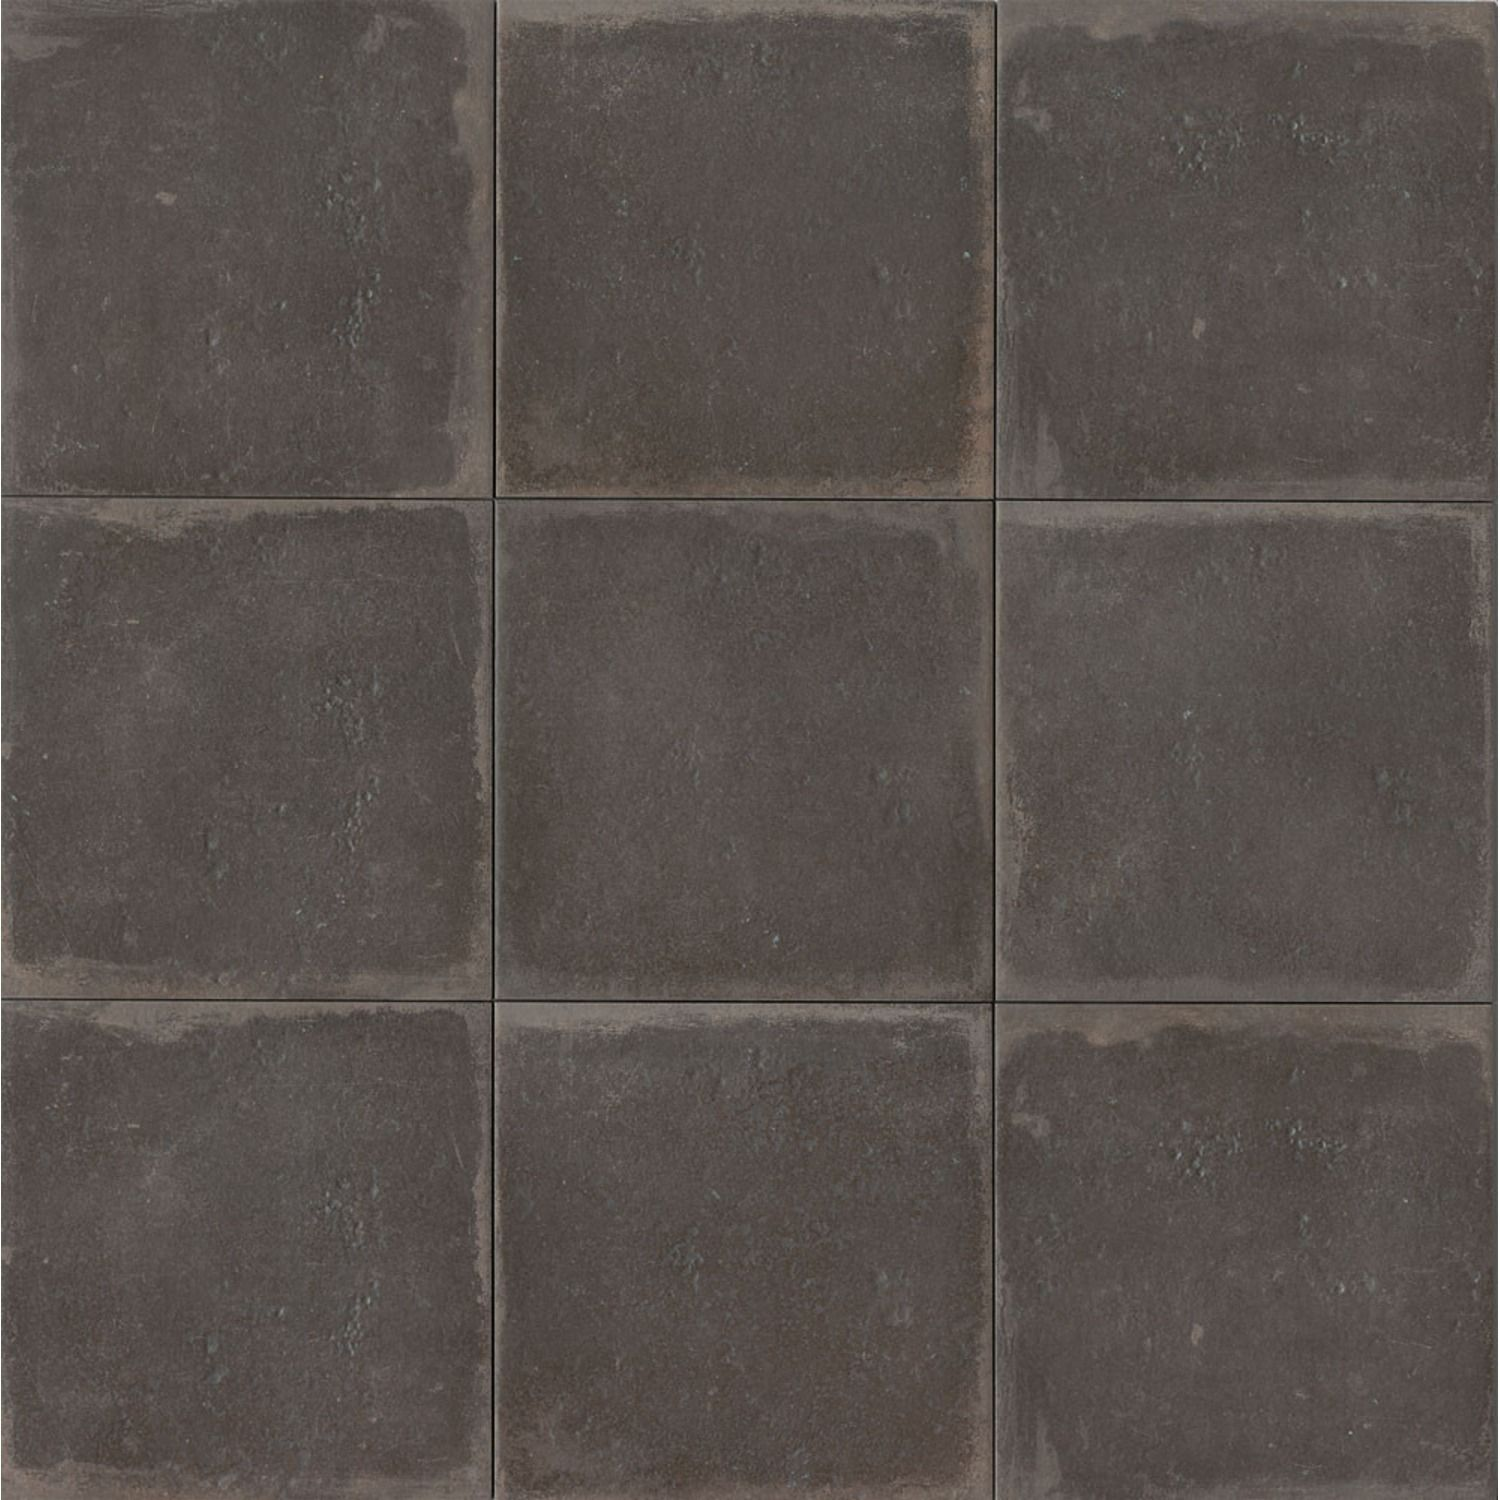 Palazzo 12 X 12 Floor Wall Tile In Castle Graphite Encaustic Tile French Country Decorating Palazzo